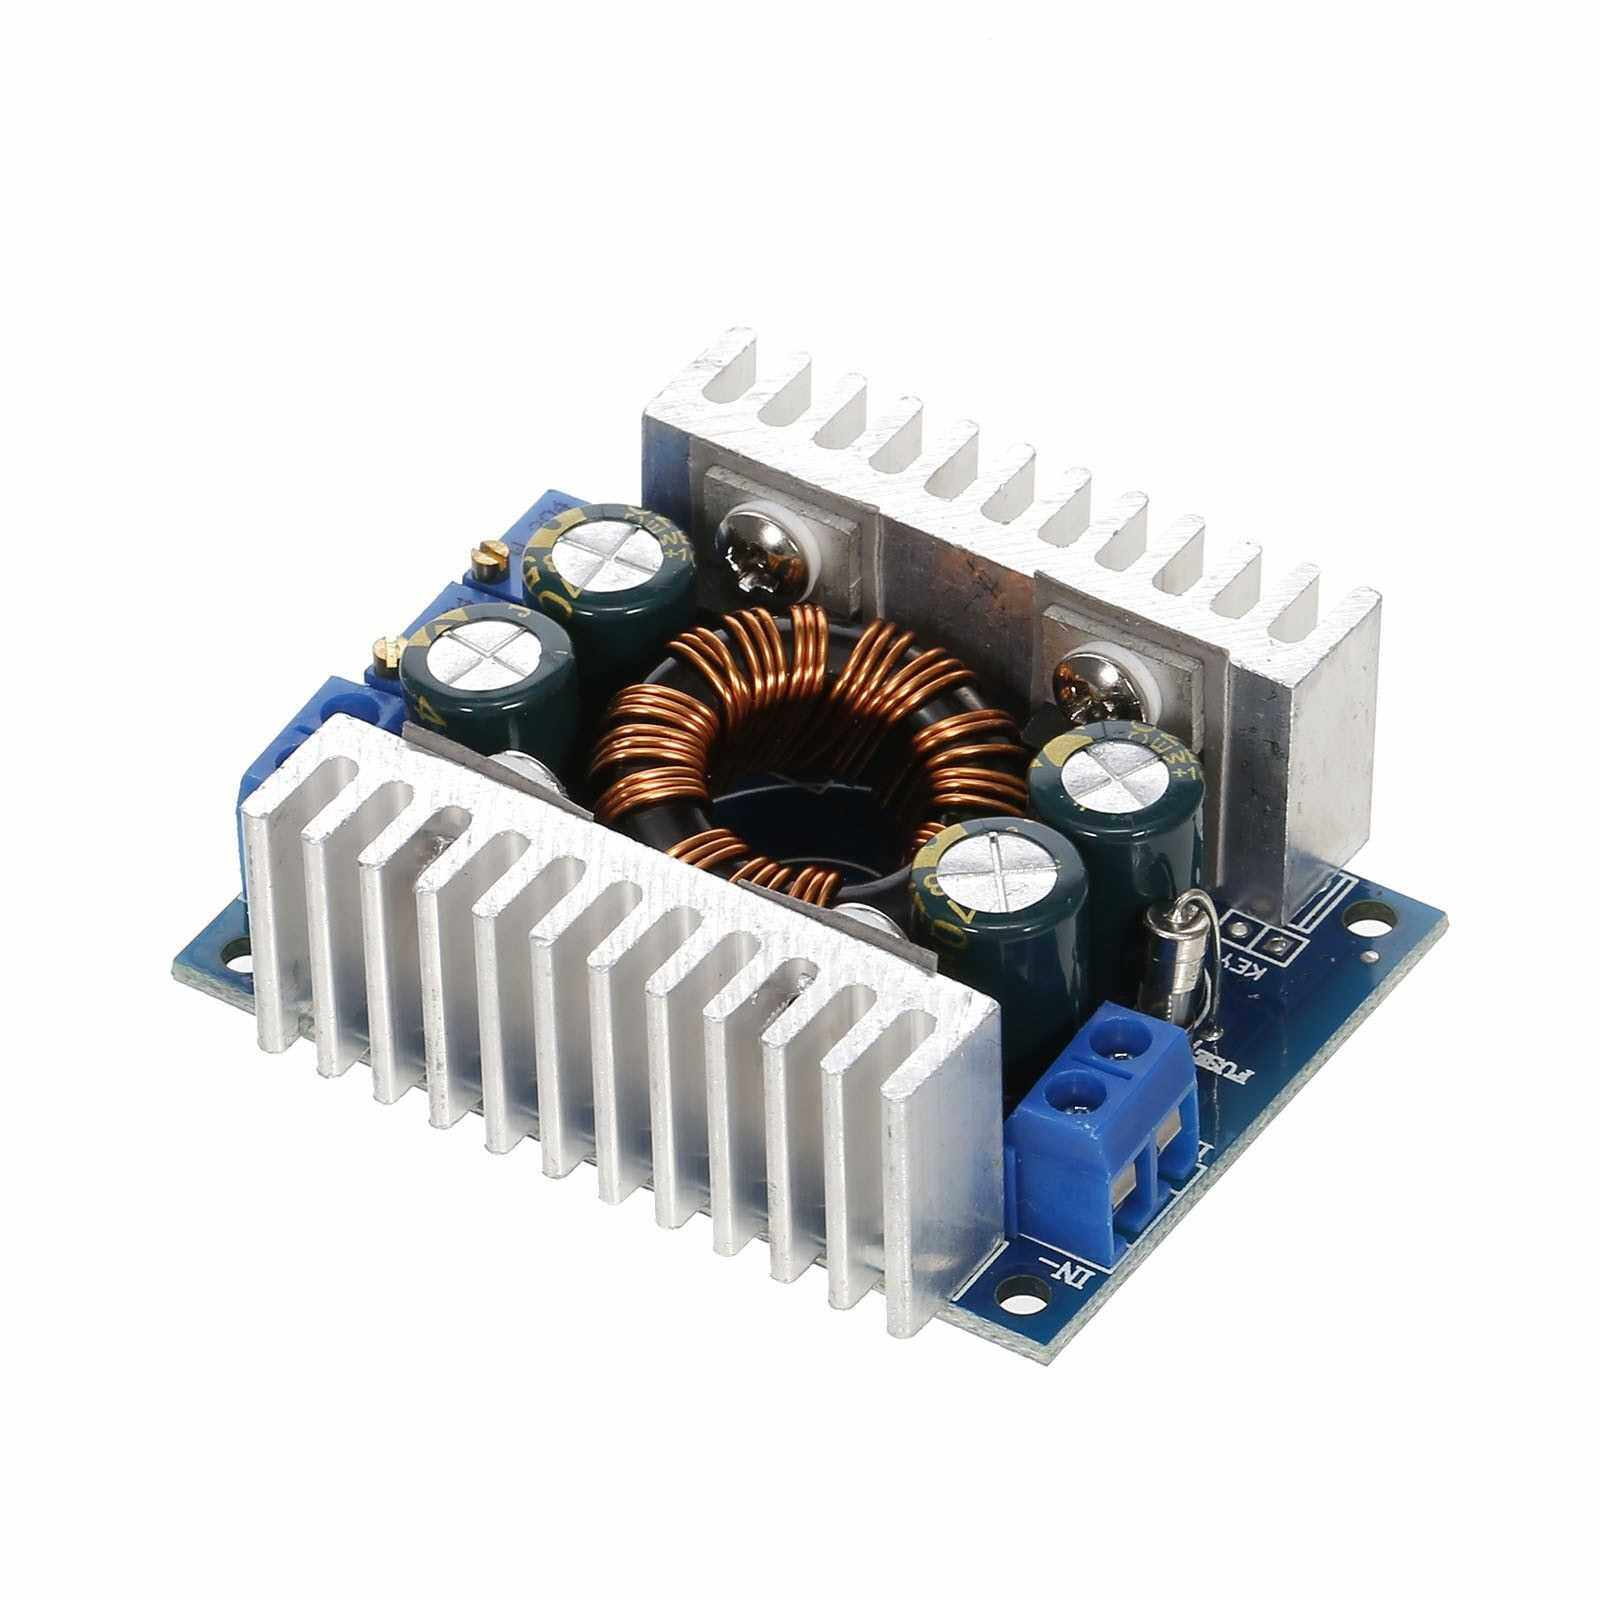 People's Choice DC-DC 5V-30V to 1.25-30V 8A Constant Voltage Current Automatic Step-up/Step-Down Regulator Charging Module Boost Converter Module Adjustable Power (Standard)